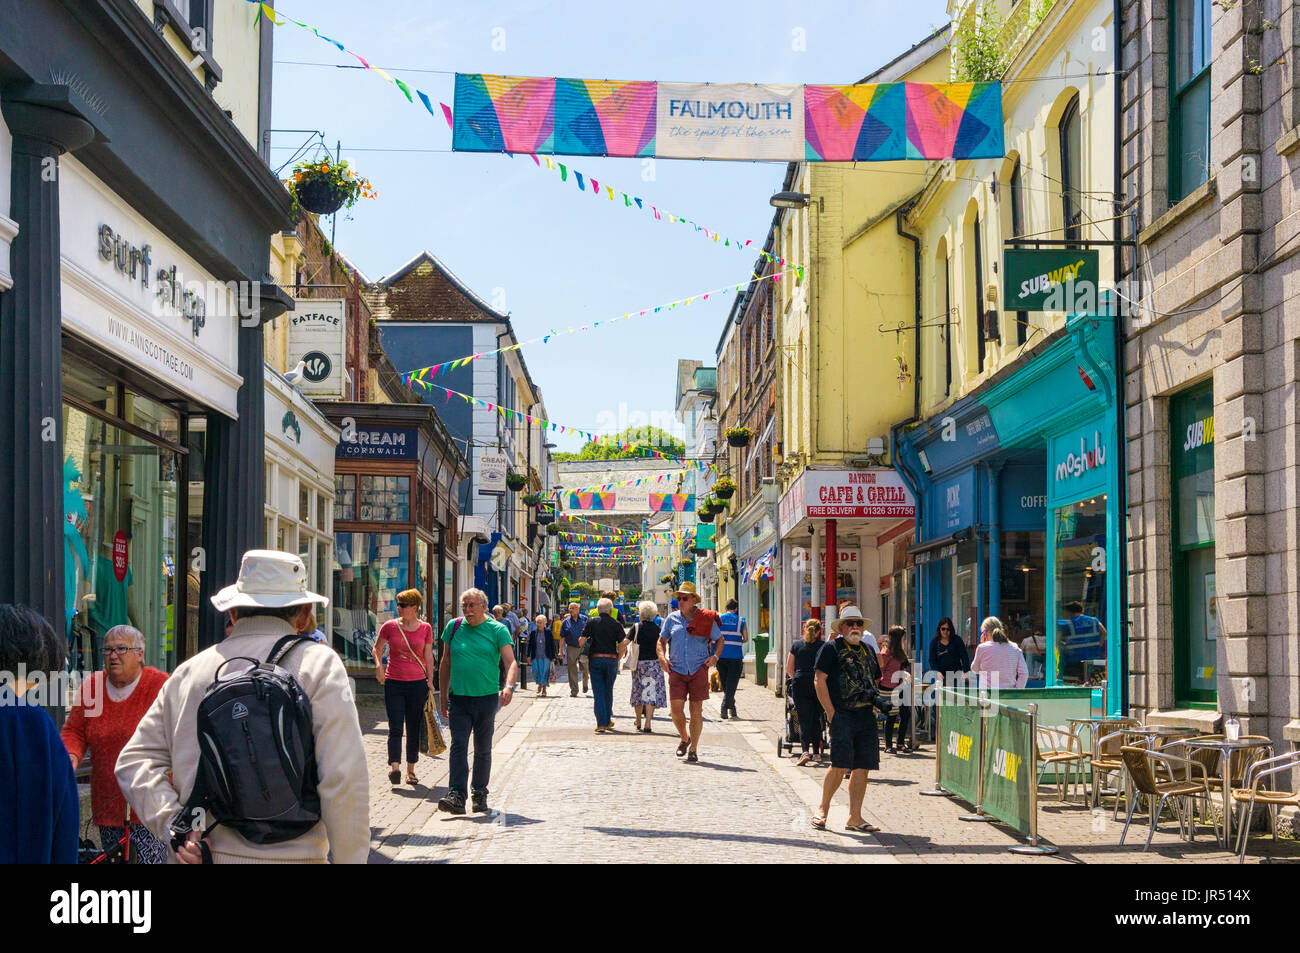 Falmouth, Cornwall, UK - Busy town centre shopping street, high street  Falmouth UK in summer - Stock Image